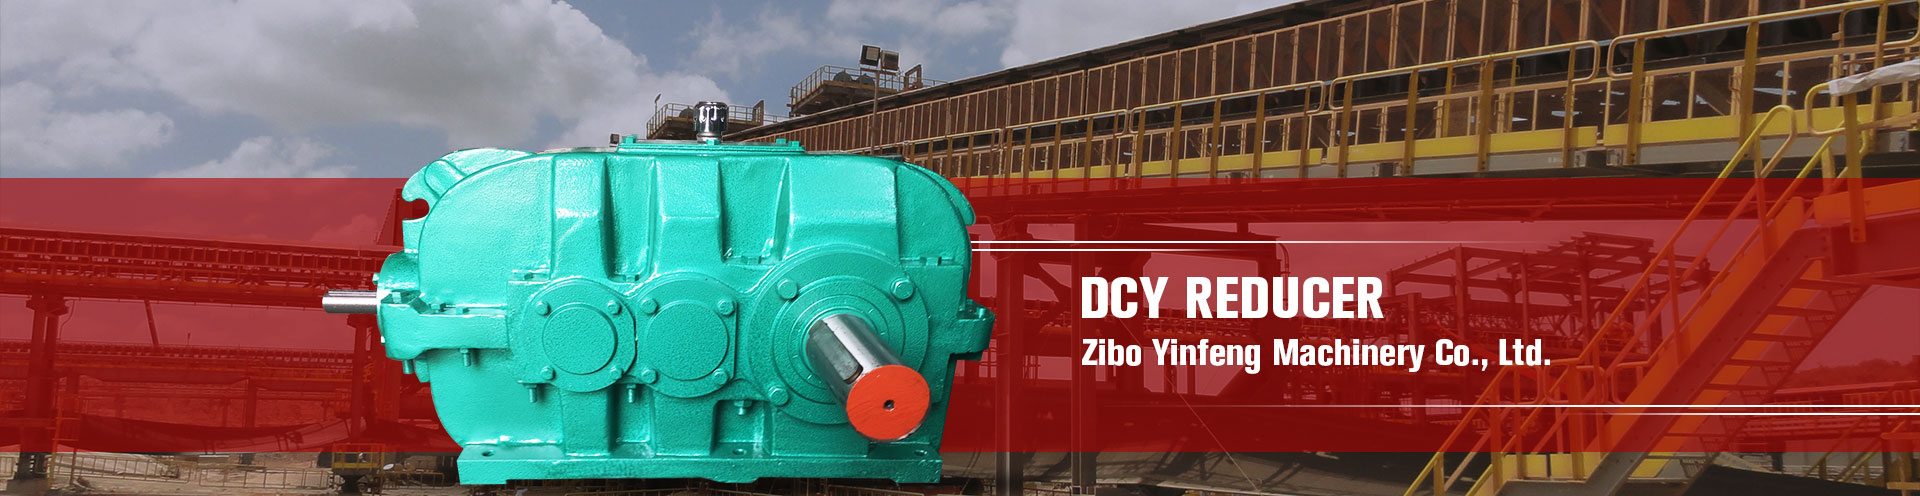 DCY Hardened Tooth Surface Bevel/Cylindrical Gear Reducer(Gearbox)